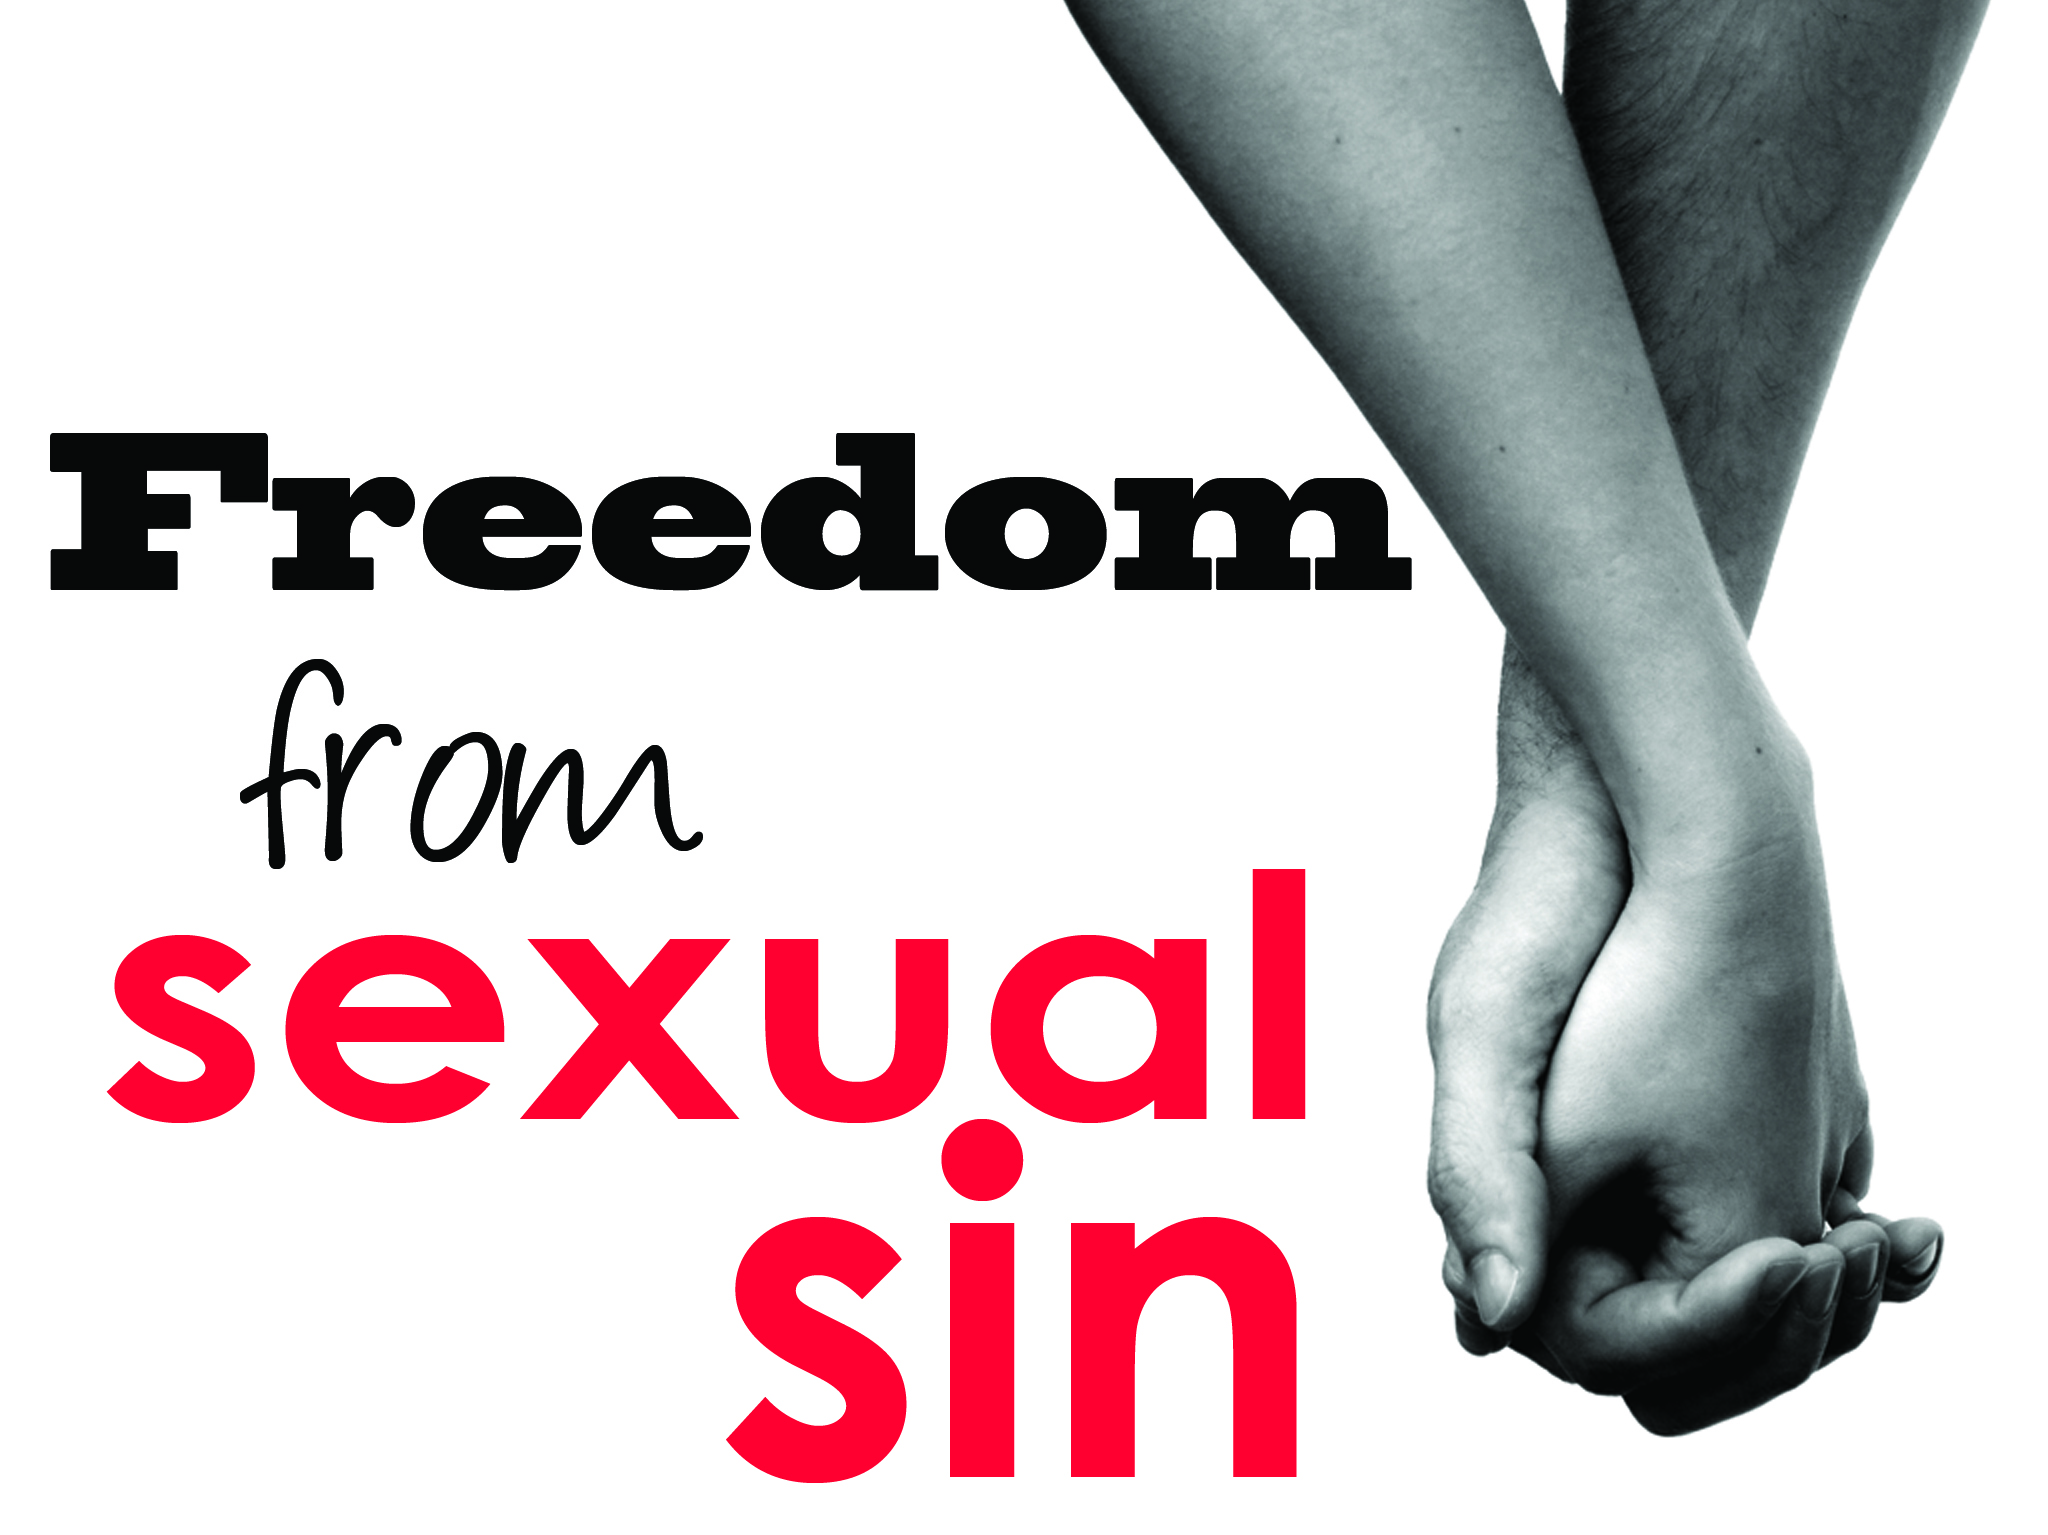 freedom from sex